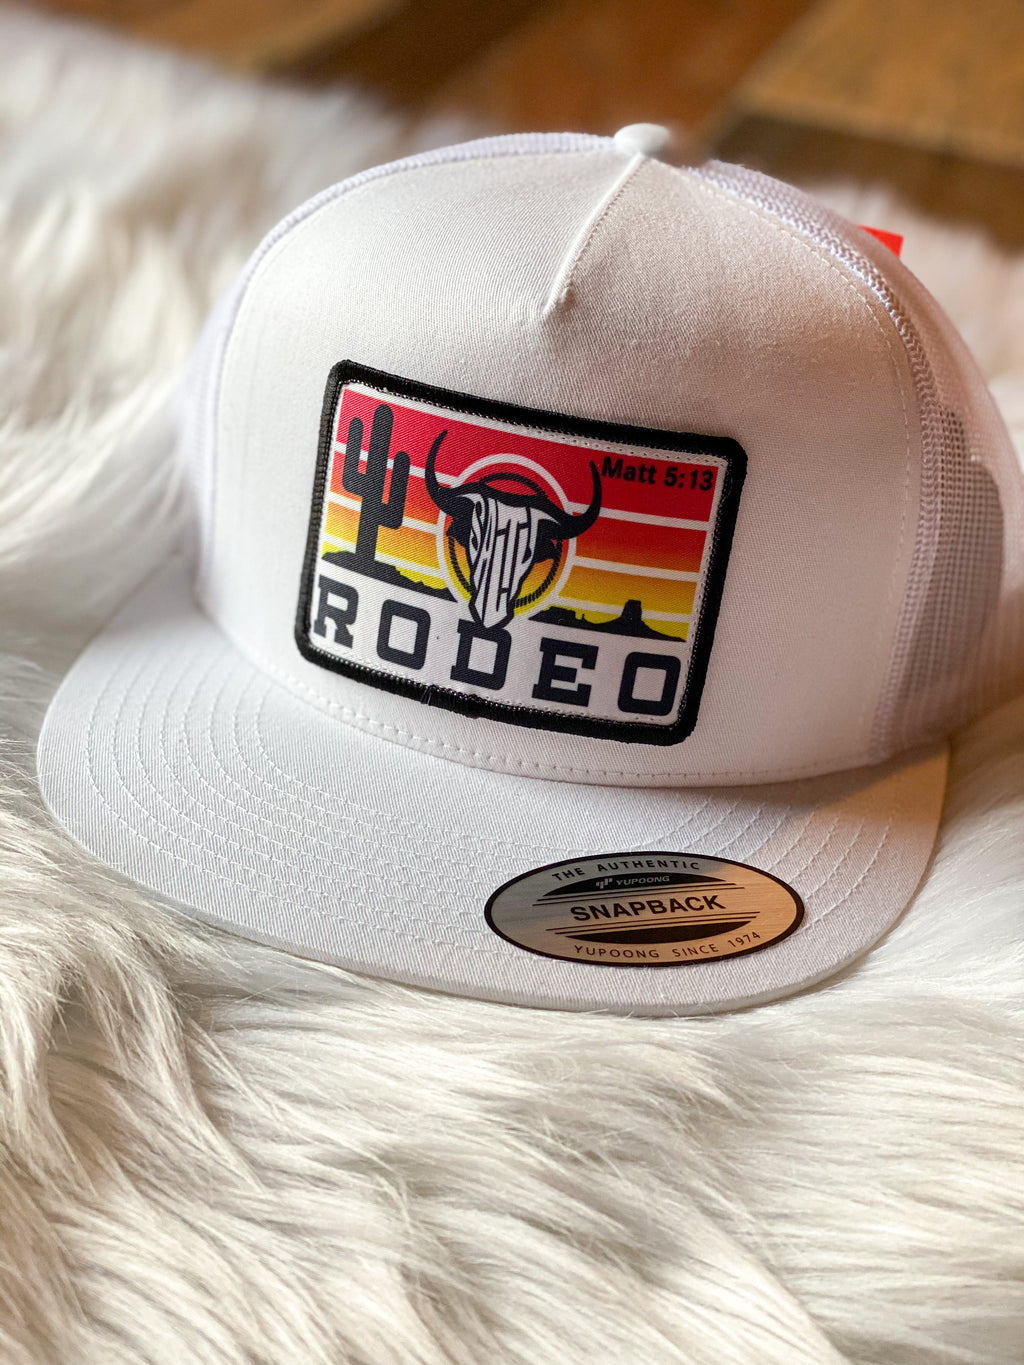 Salty Rodeo SnapBack- The Pearl